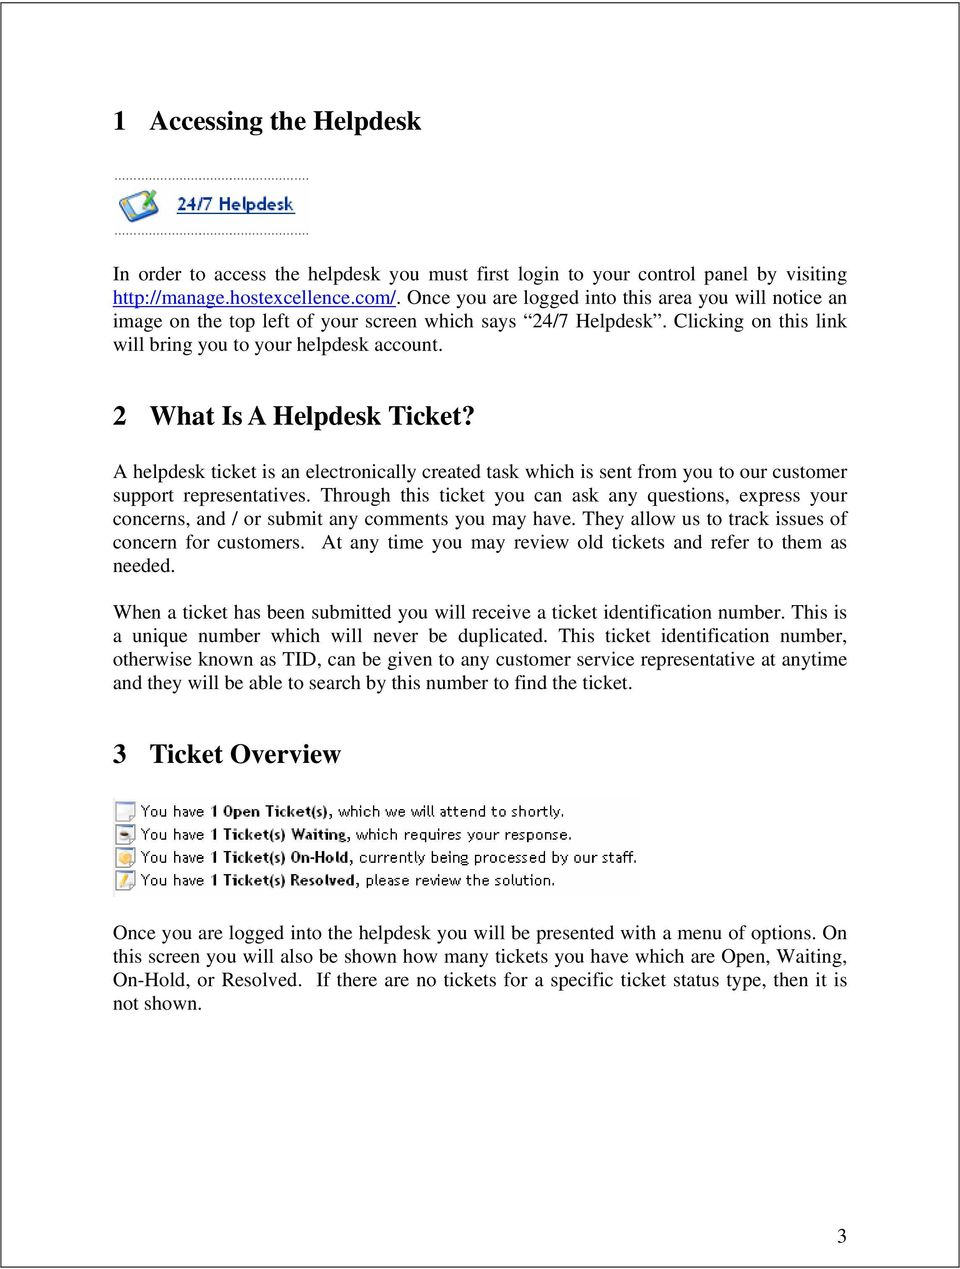 2 What Is A Helpdesk Ticket? A helpdesk ticket is an electronically created task which is sent from you to our customer support representatives.